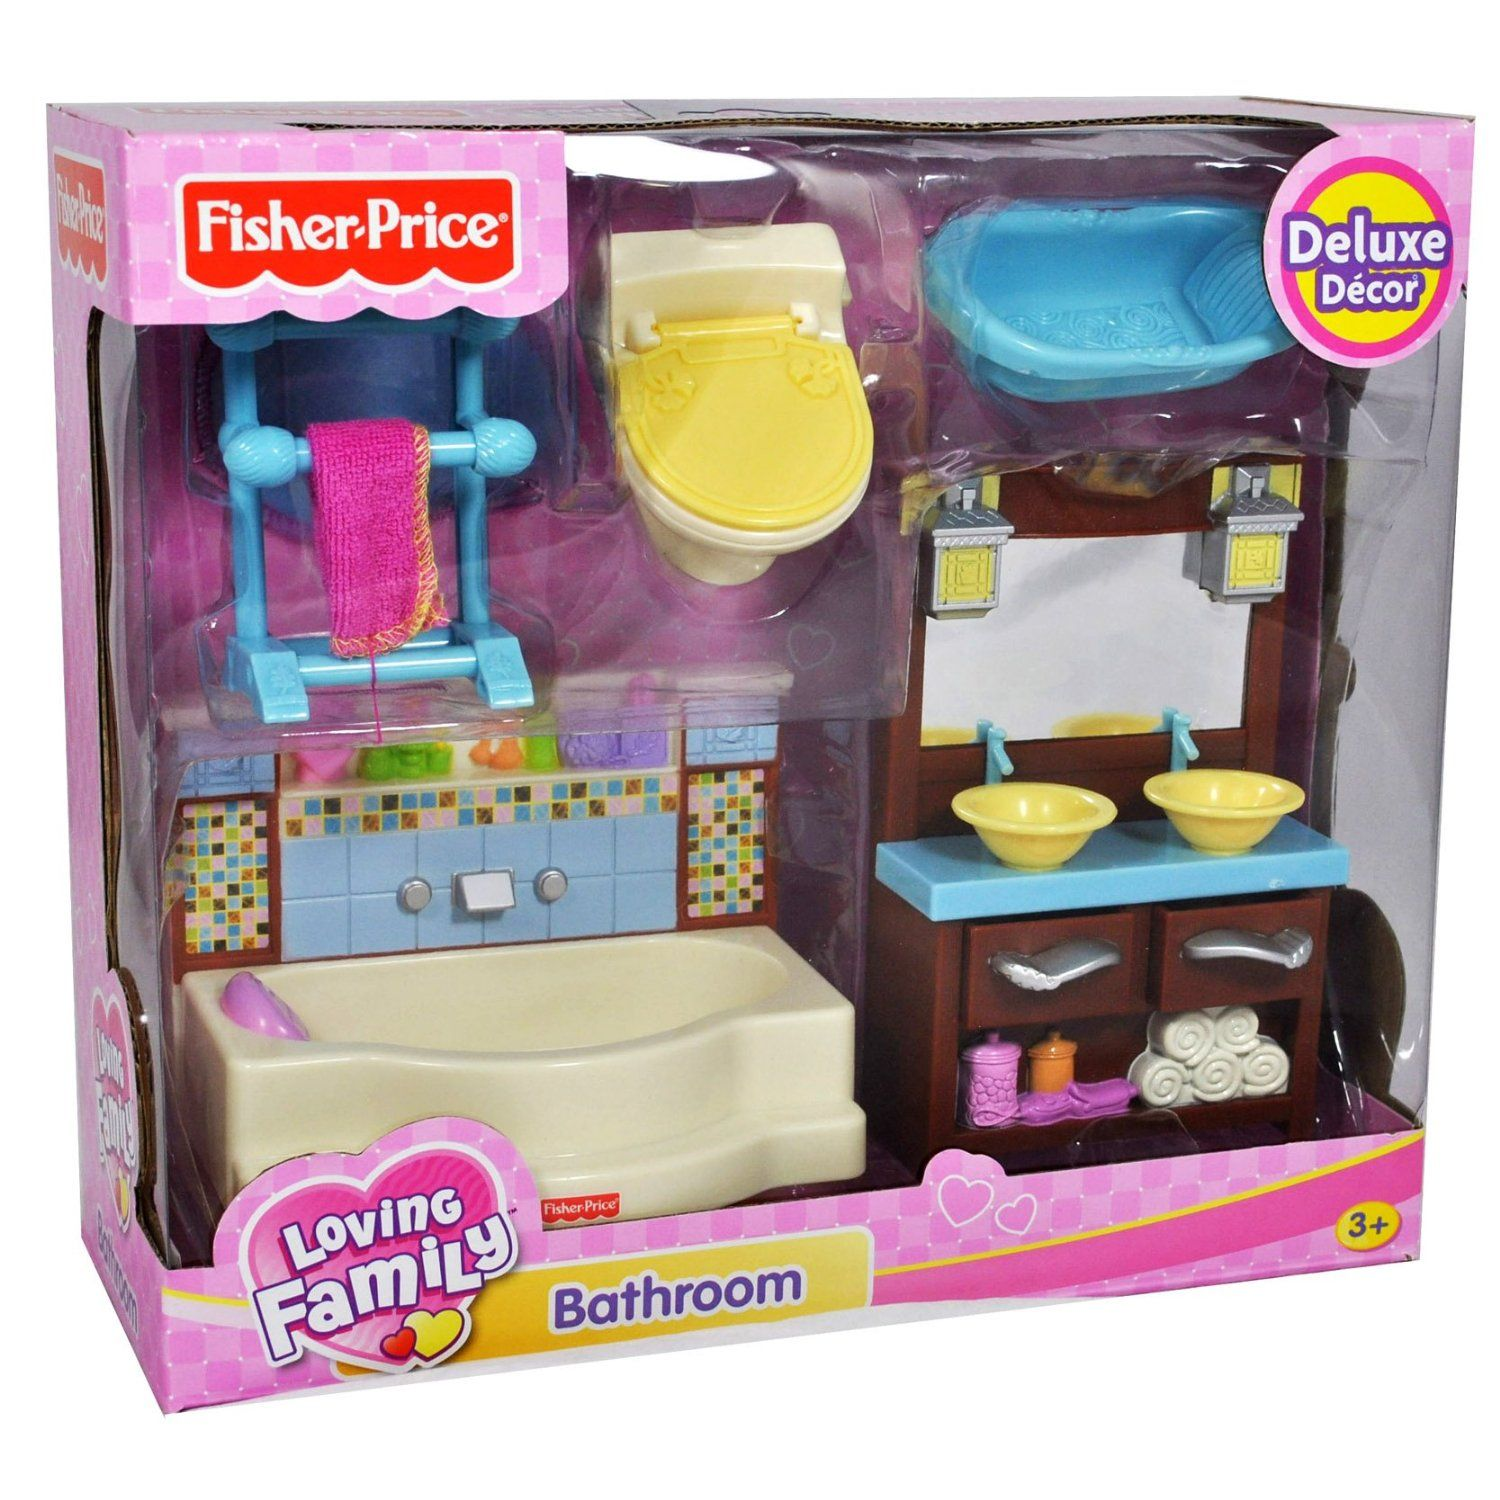 fisher price dollhouse accessories | Fisher Price Loving Family Dollhouse Deluxe Decor Furniture ...